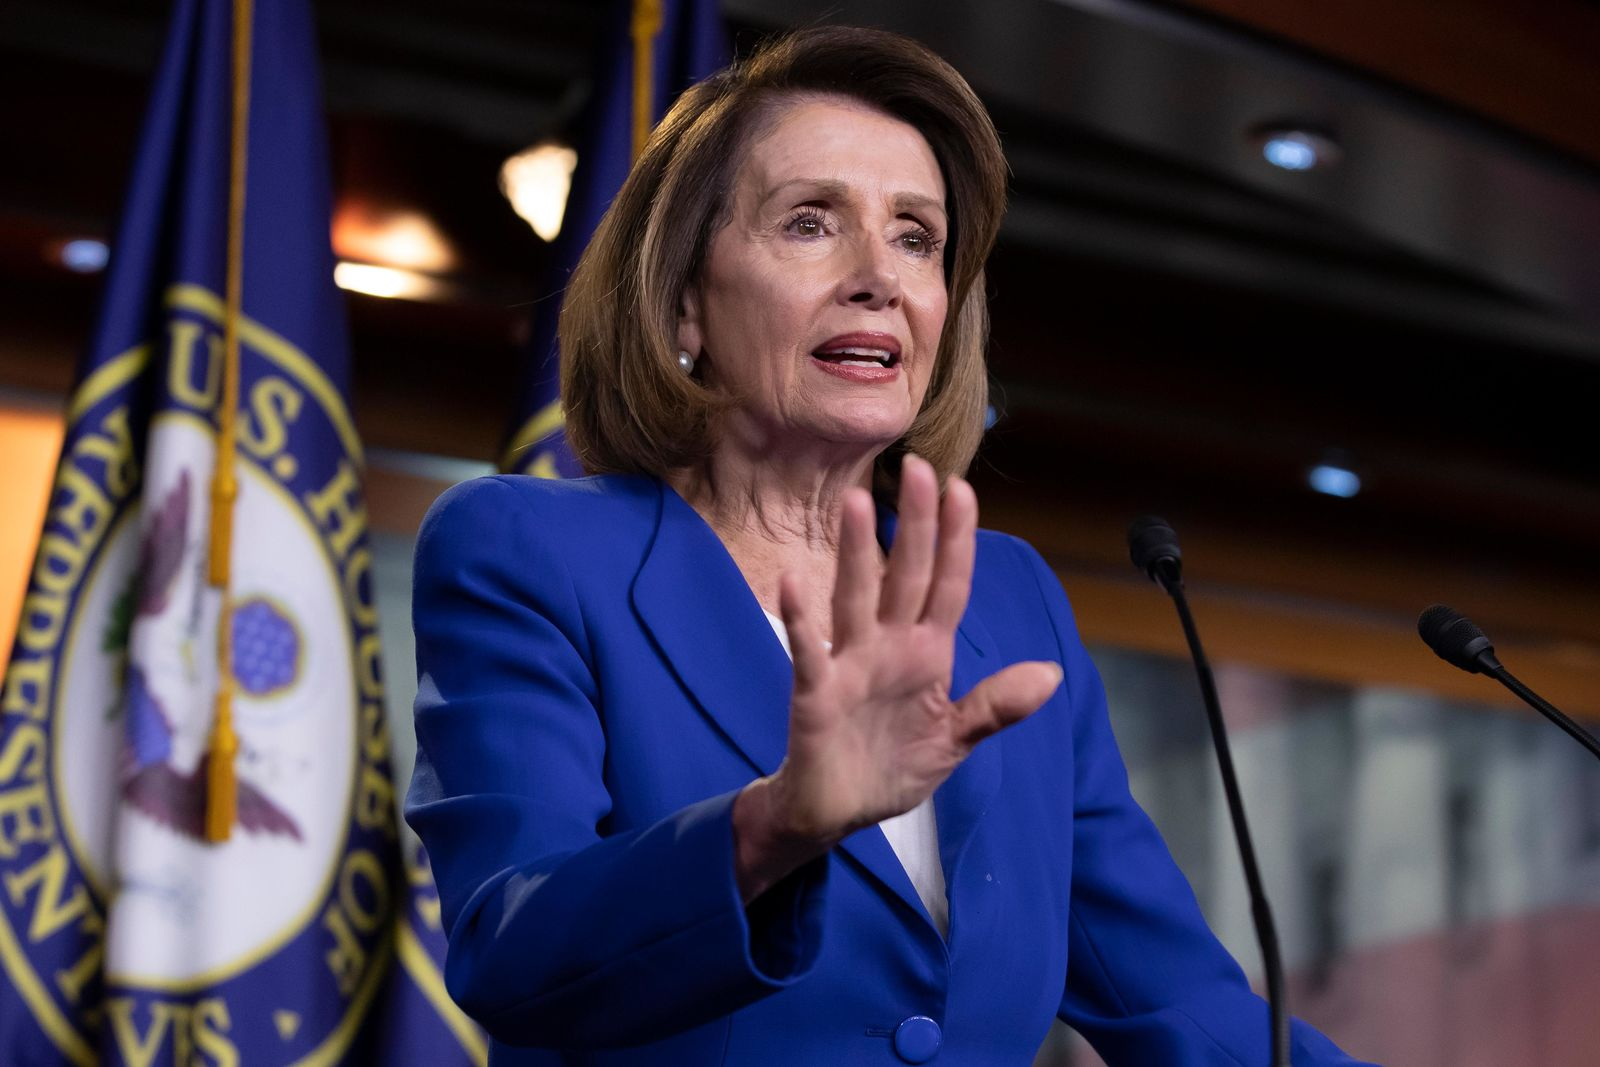 Speaker of the House Nancy Pelosi, D-Calif., talks to reporters during a news conference a day after a bipartisan group of House and Senate bargainers met to craft a border security compromise aimed at avoiding another government shutdown. (AP Photo/J. Scott Applewhite)